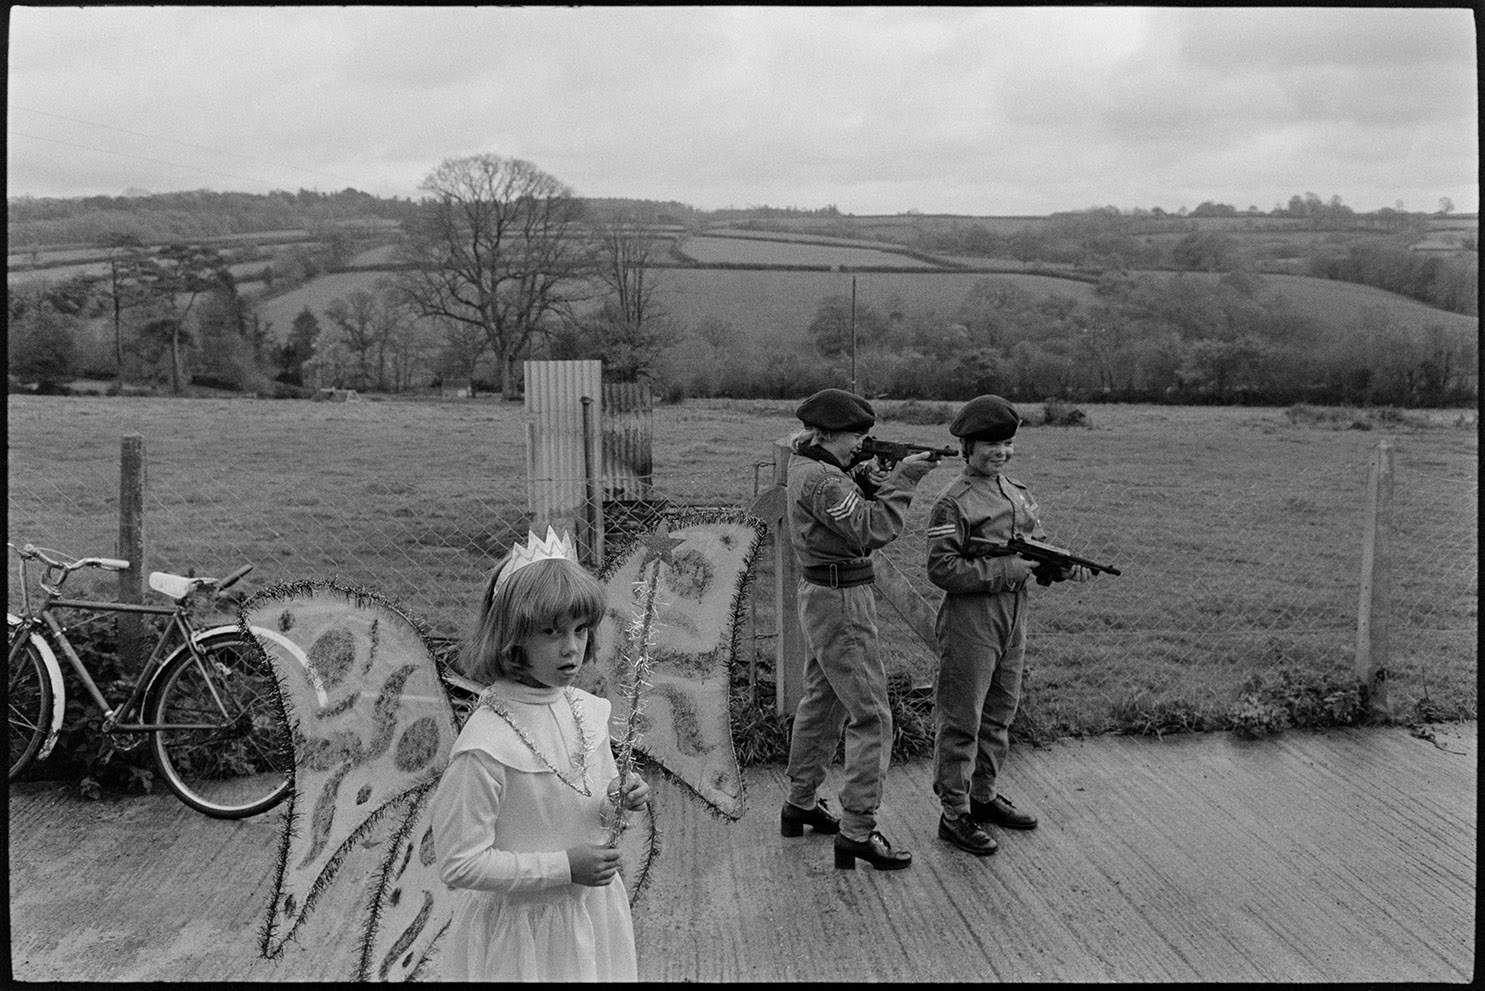 Children in fancy dress - fairy and soldiers, Dolton, October 1975